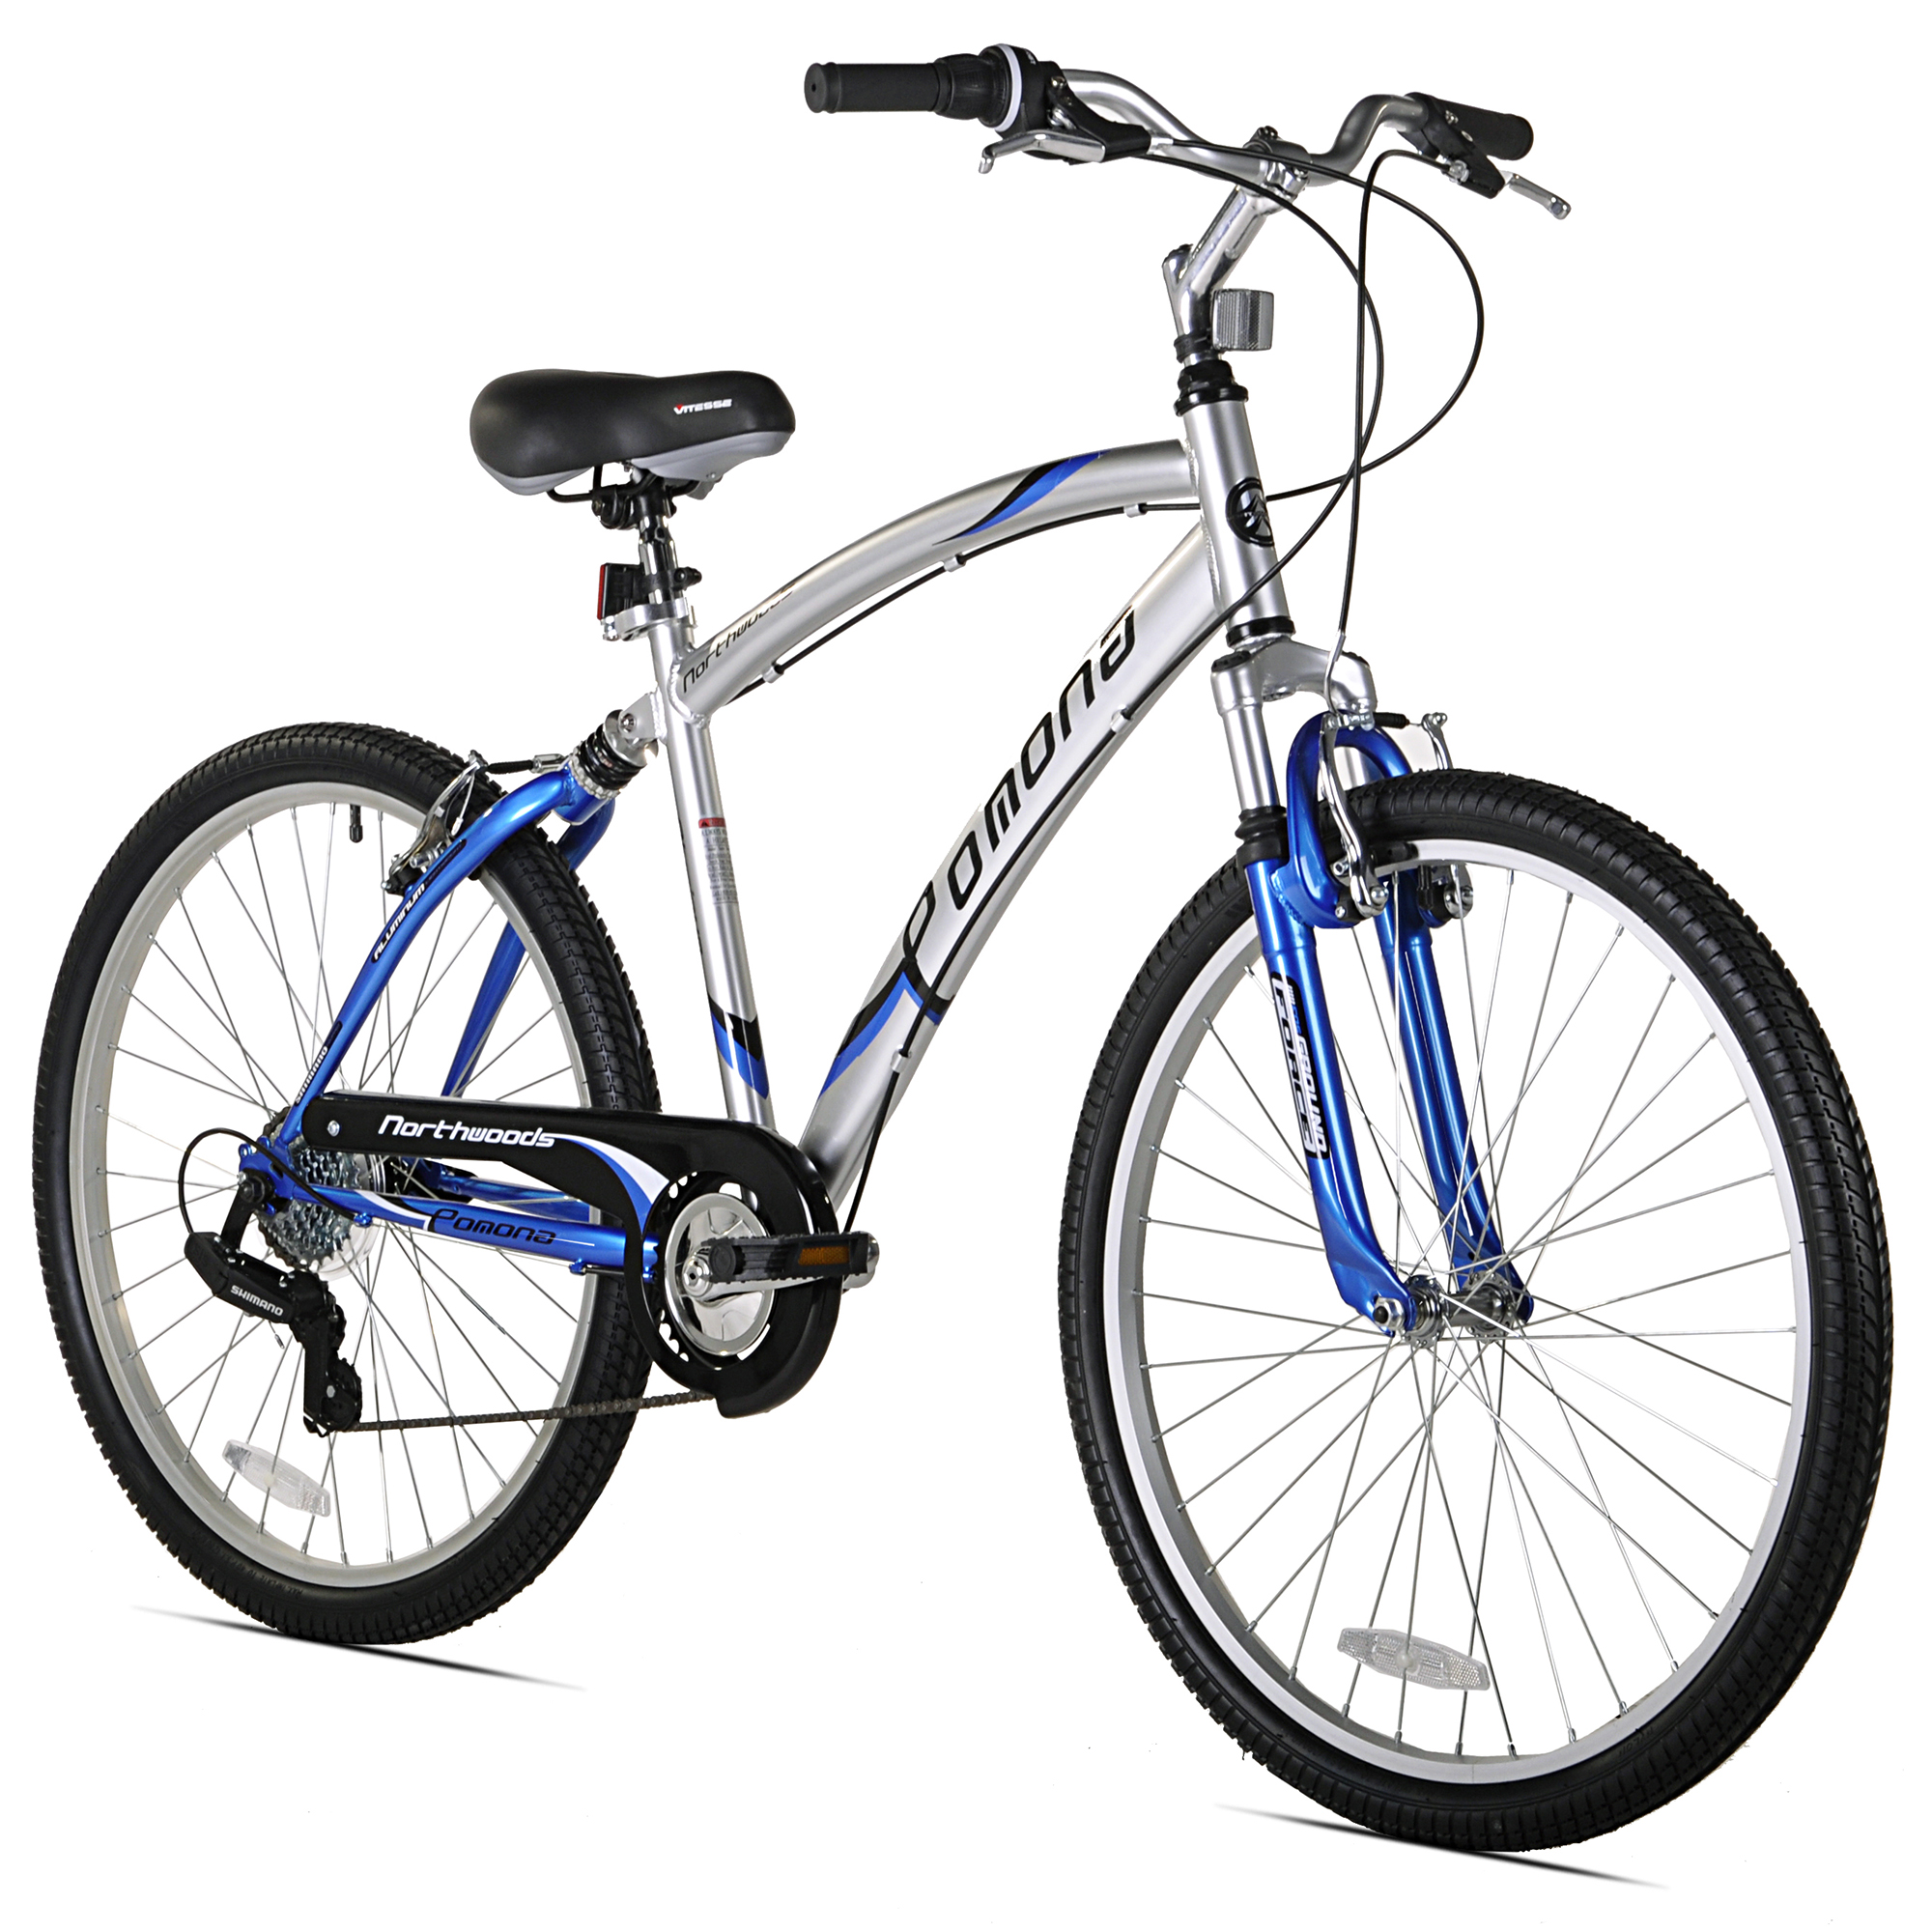 "Northwoods Pomona 26"" Men's 7 Speed Dual Suspension Fitness Cruiser Bike, Blue"